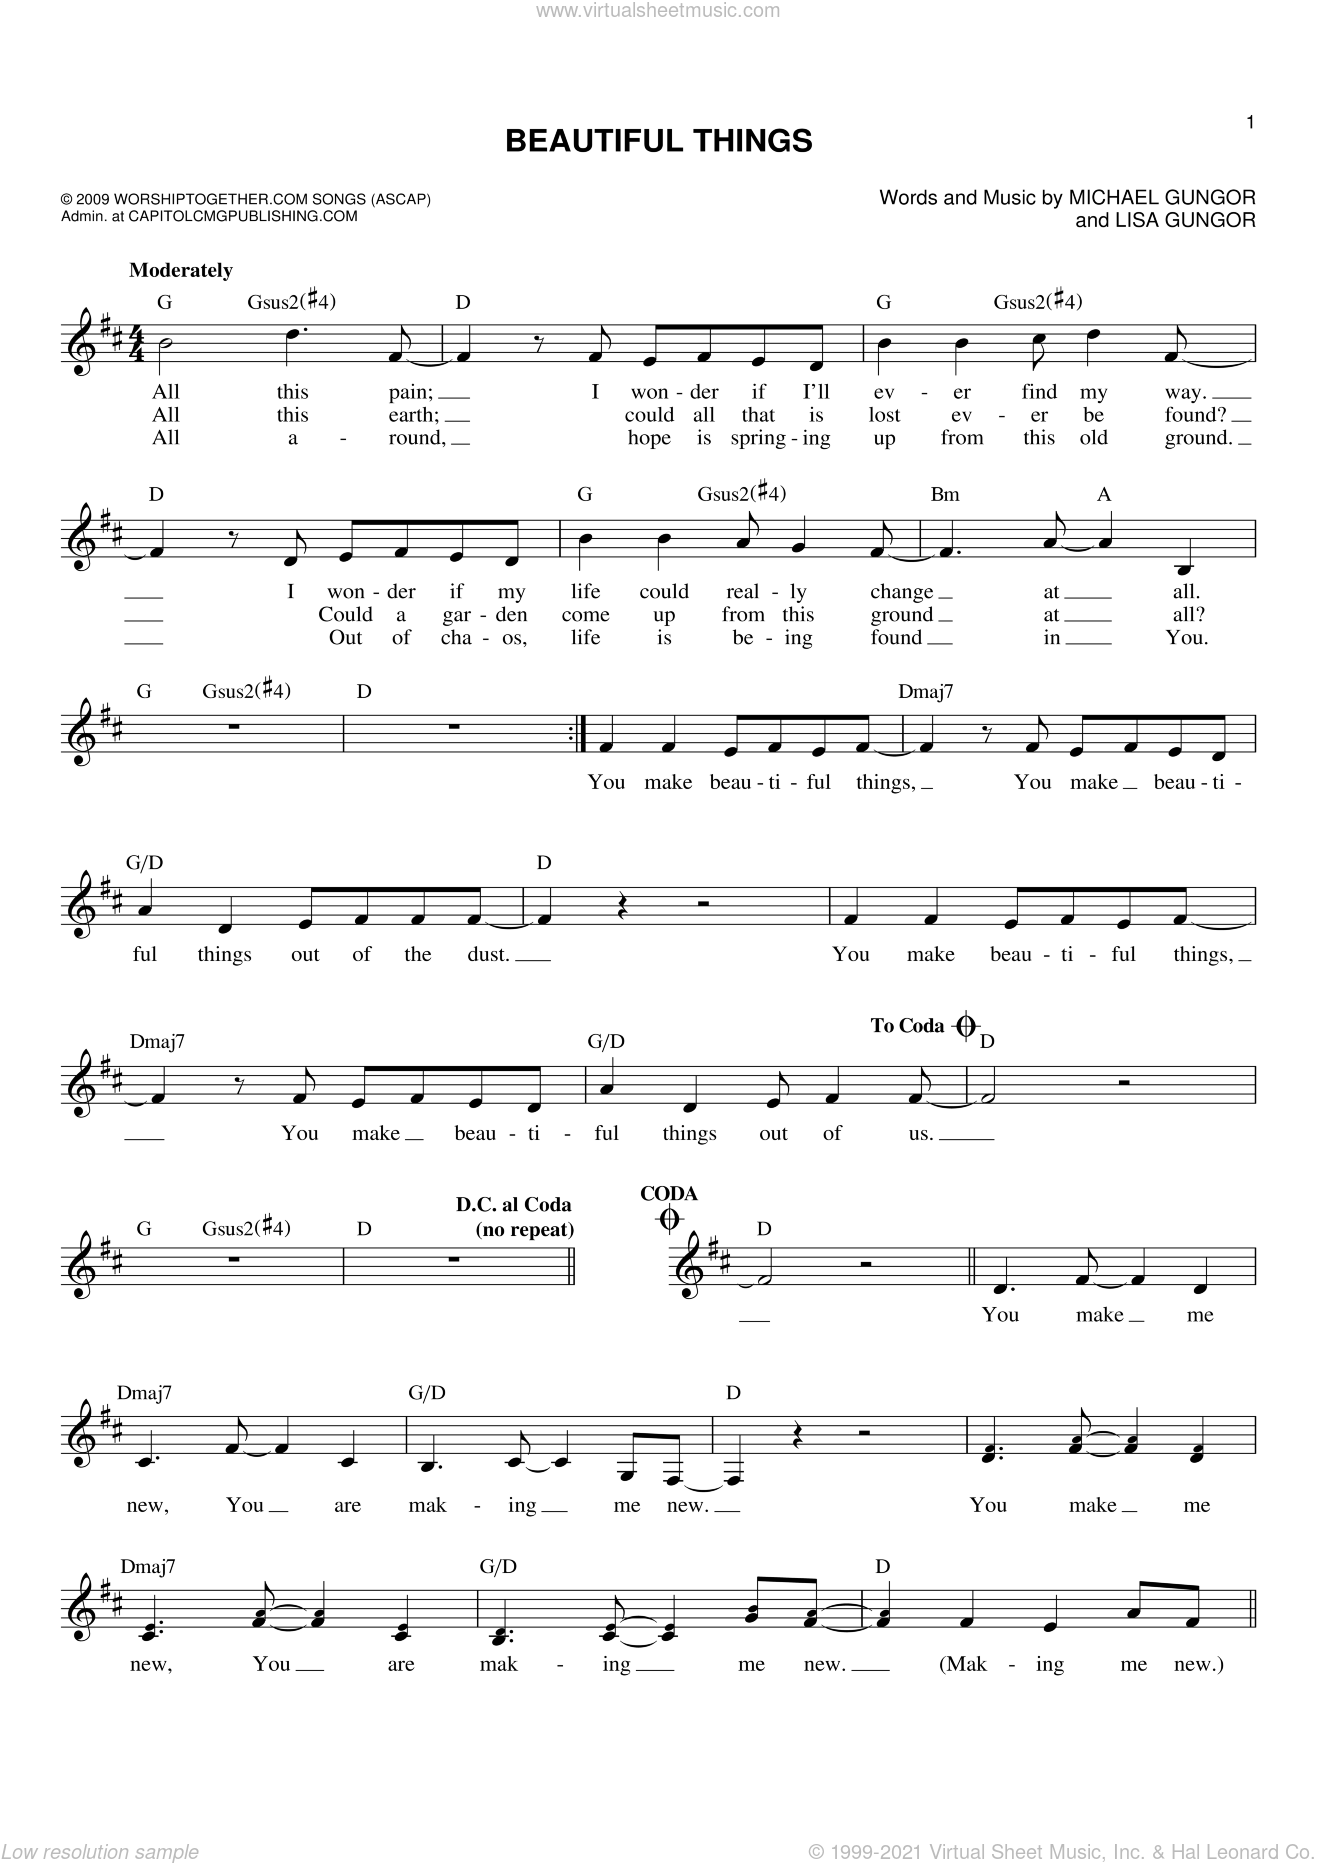 Beautiful Things sheet music for voice and other instruments (fake book) by Michael Gungor and Lisa Gungor, intermediate skill level